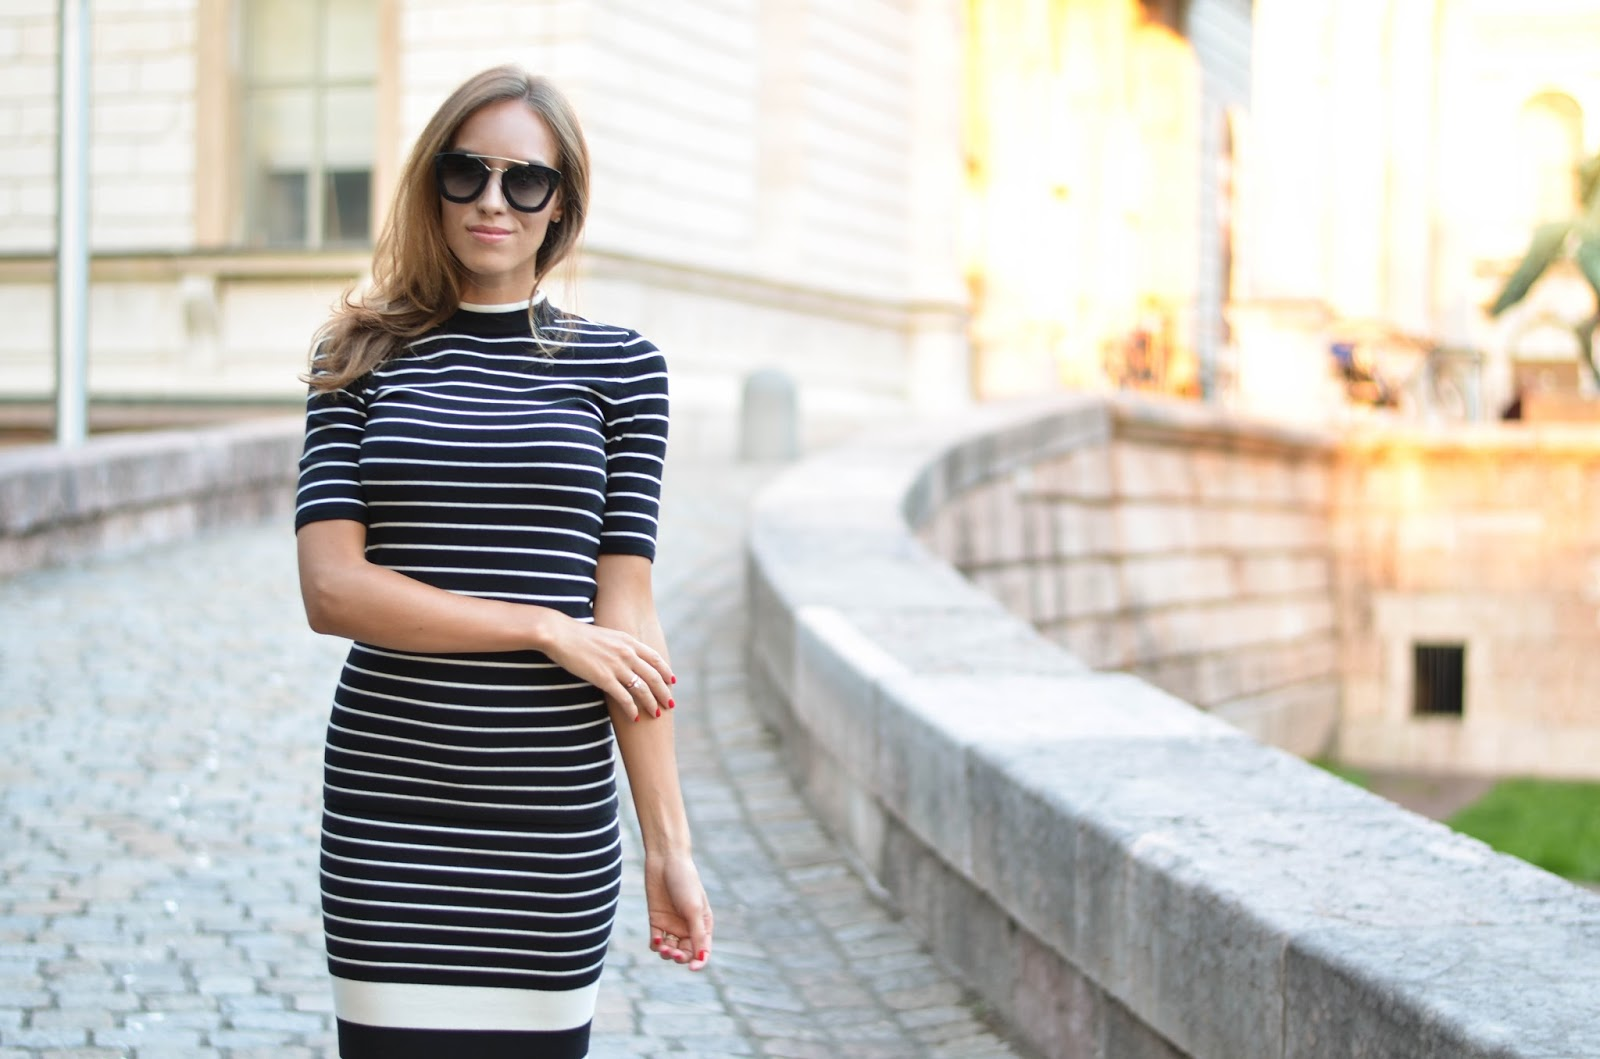 kristjaana mere fall fashion outfit black white striped knitted dress